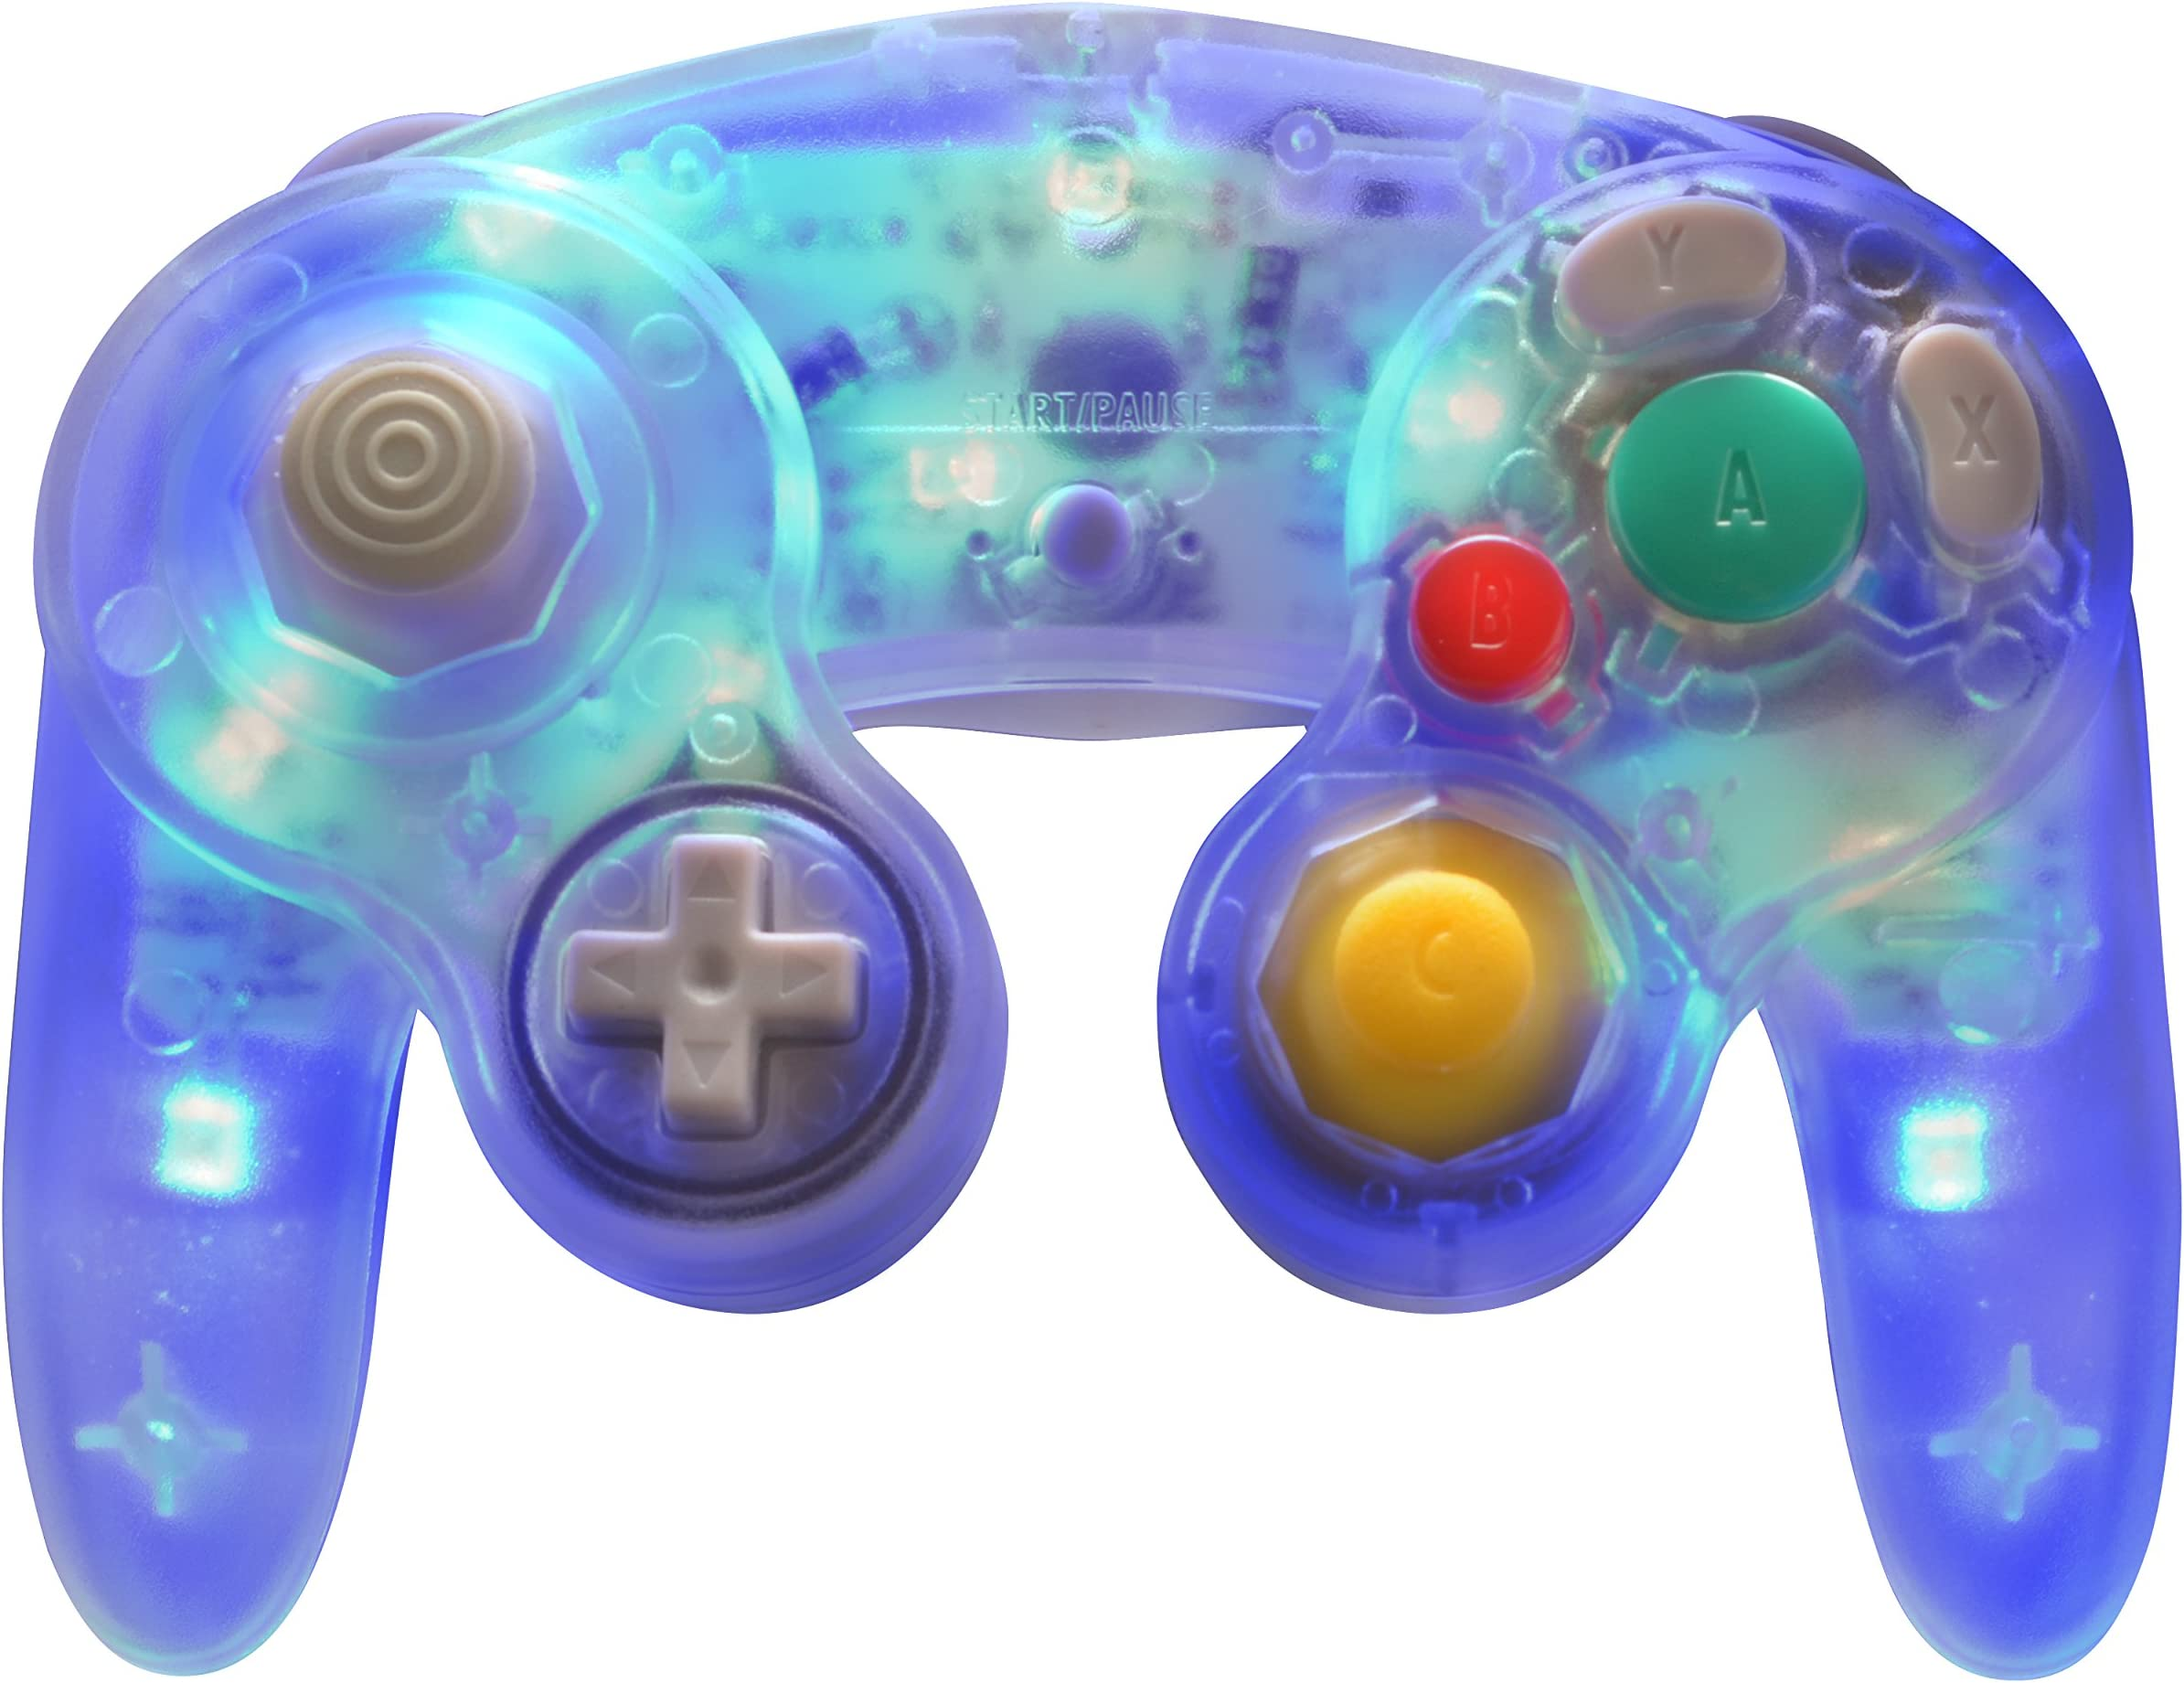 RETROLINK GAMECUBE CONTROLLER WINDOWS VISTA DRIVER DOWNLOAD